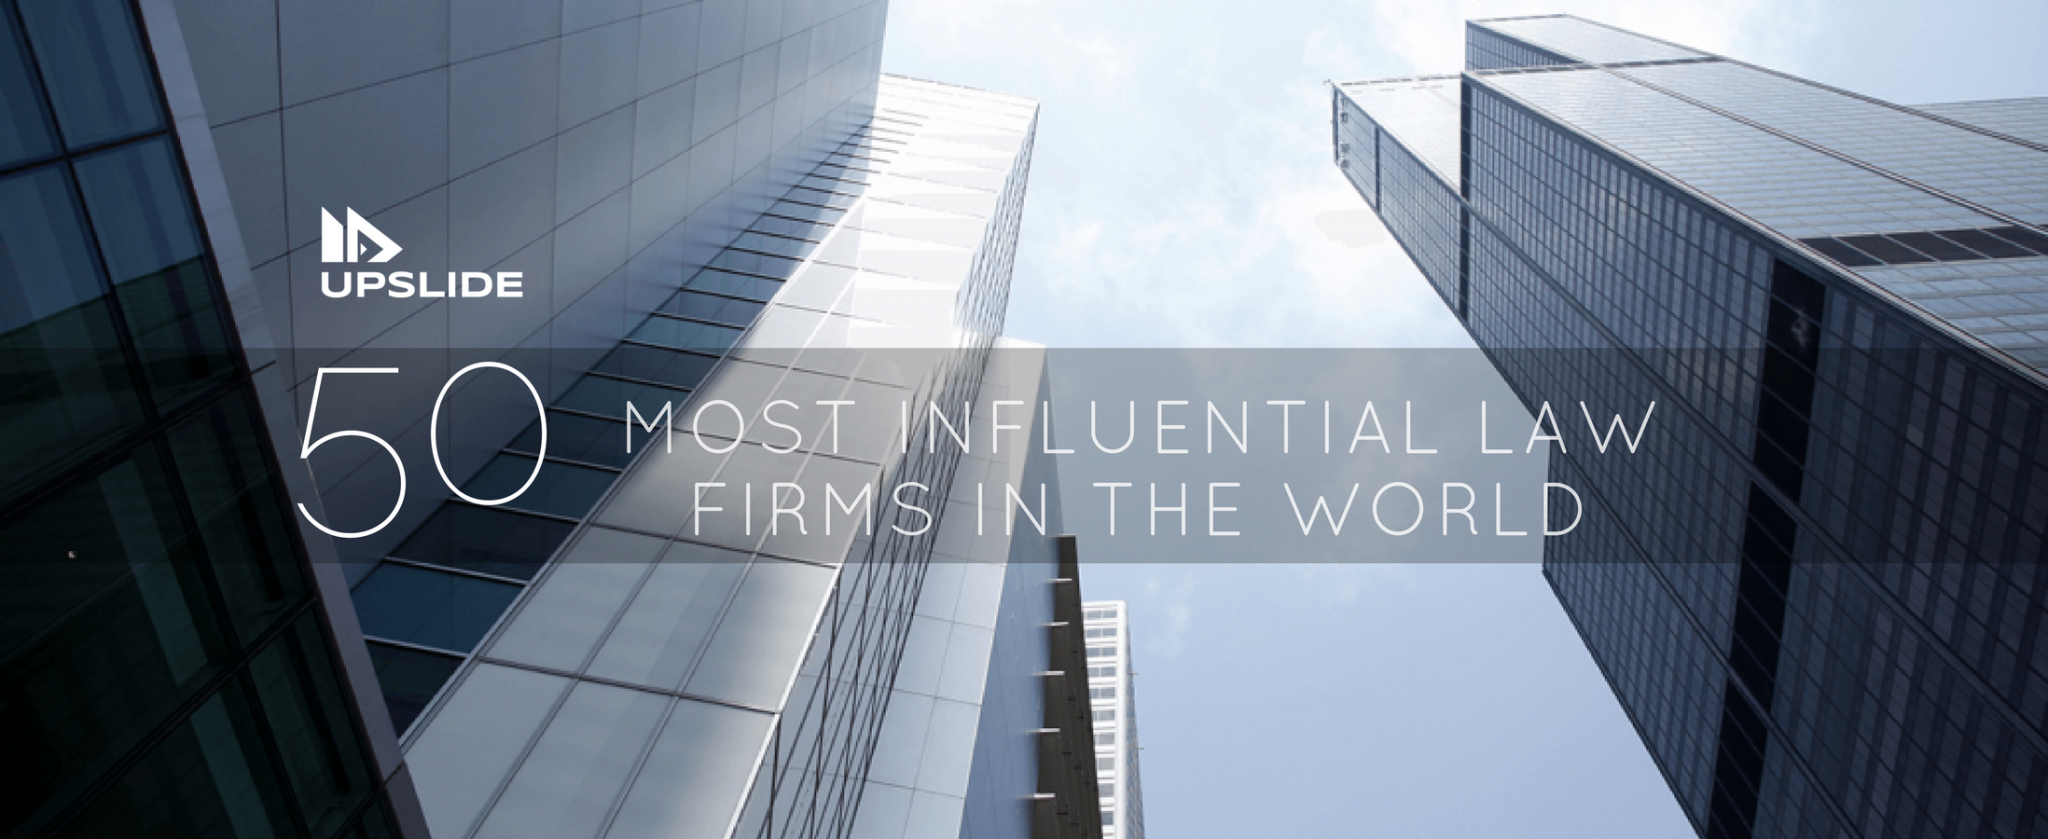 50 most influential best law firms in the world upslide